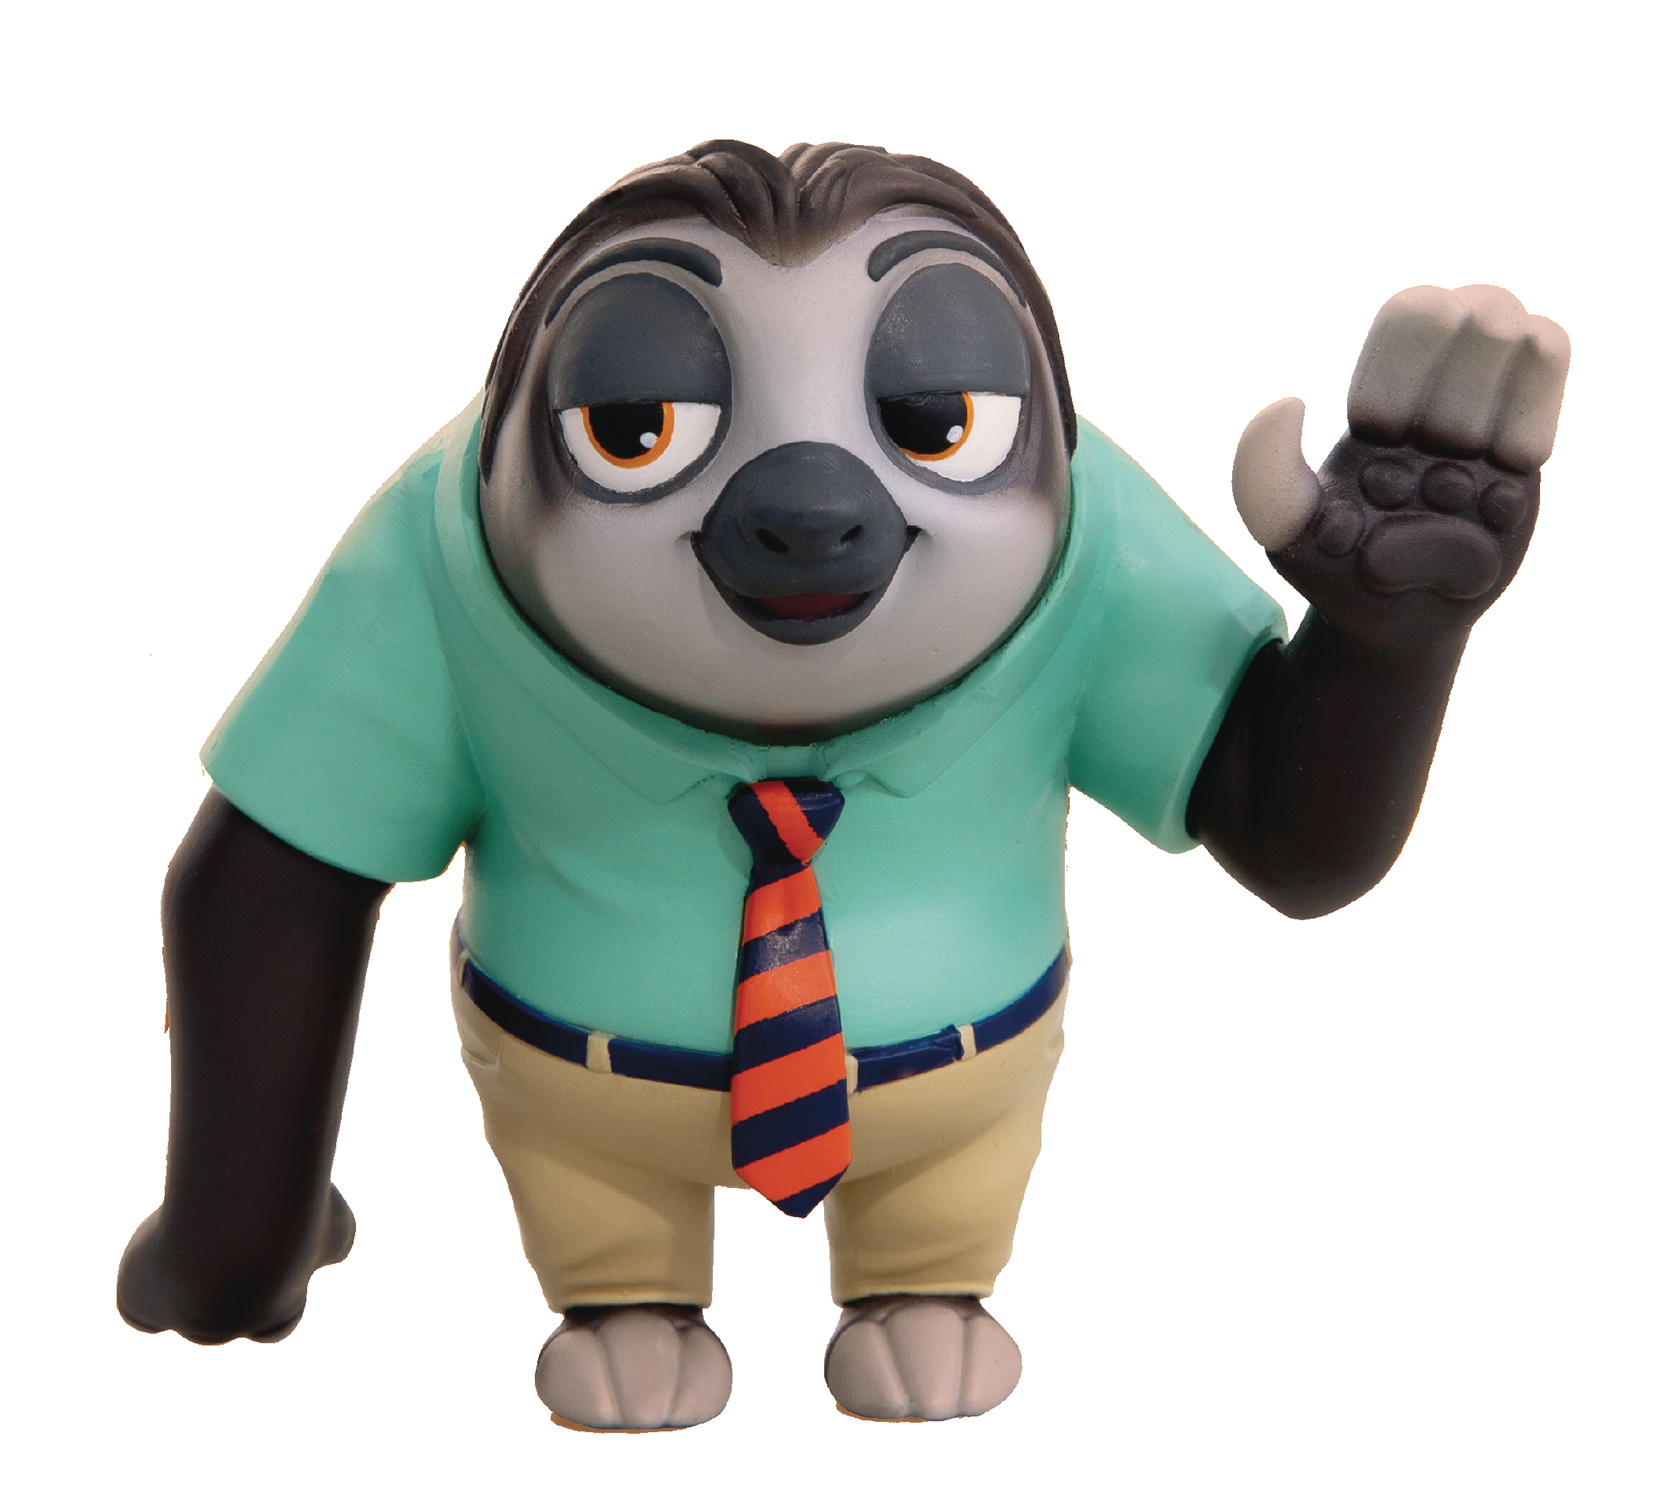 DISNEY ZOOTOPIA MEA-006 FLASH PX FIG